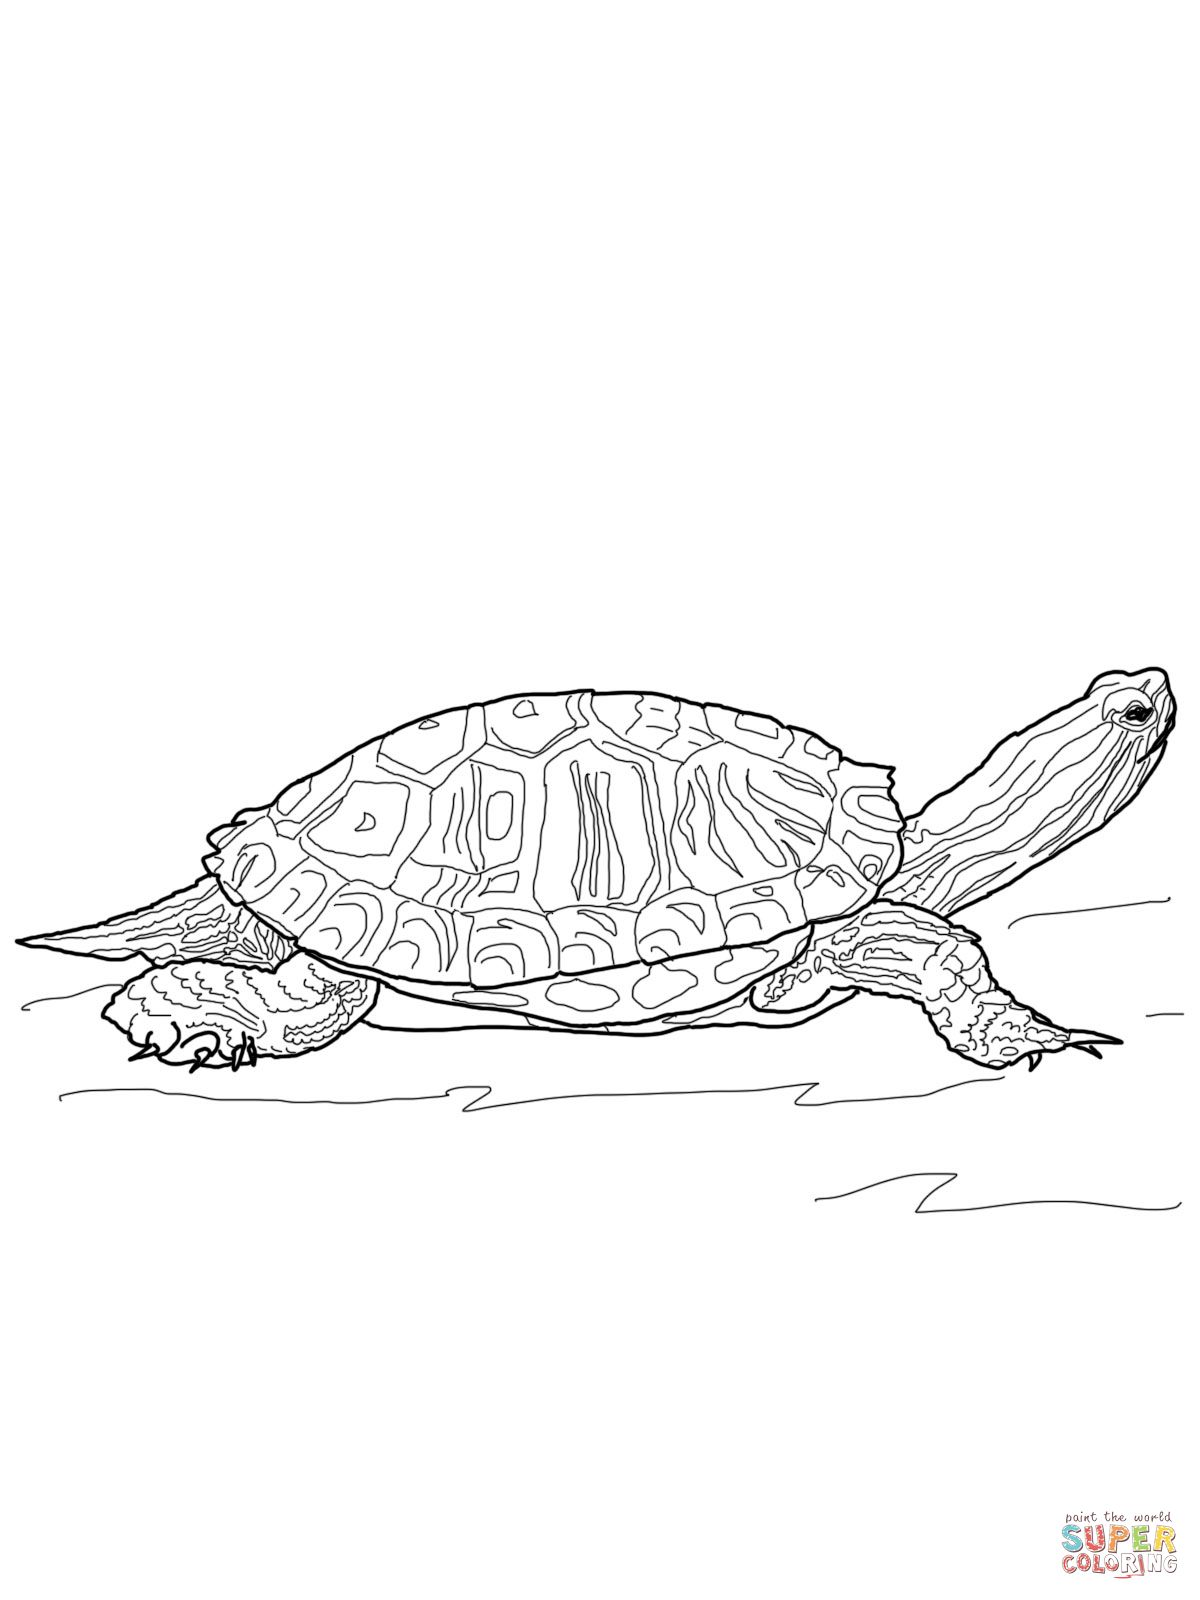 red eared slider turtle outline - Google Search | Nature Study ...